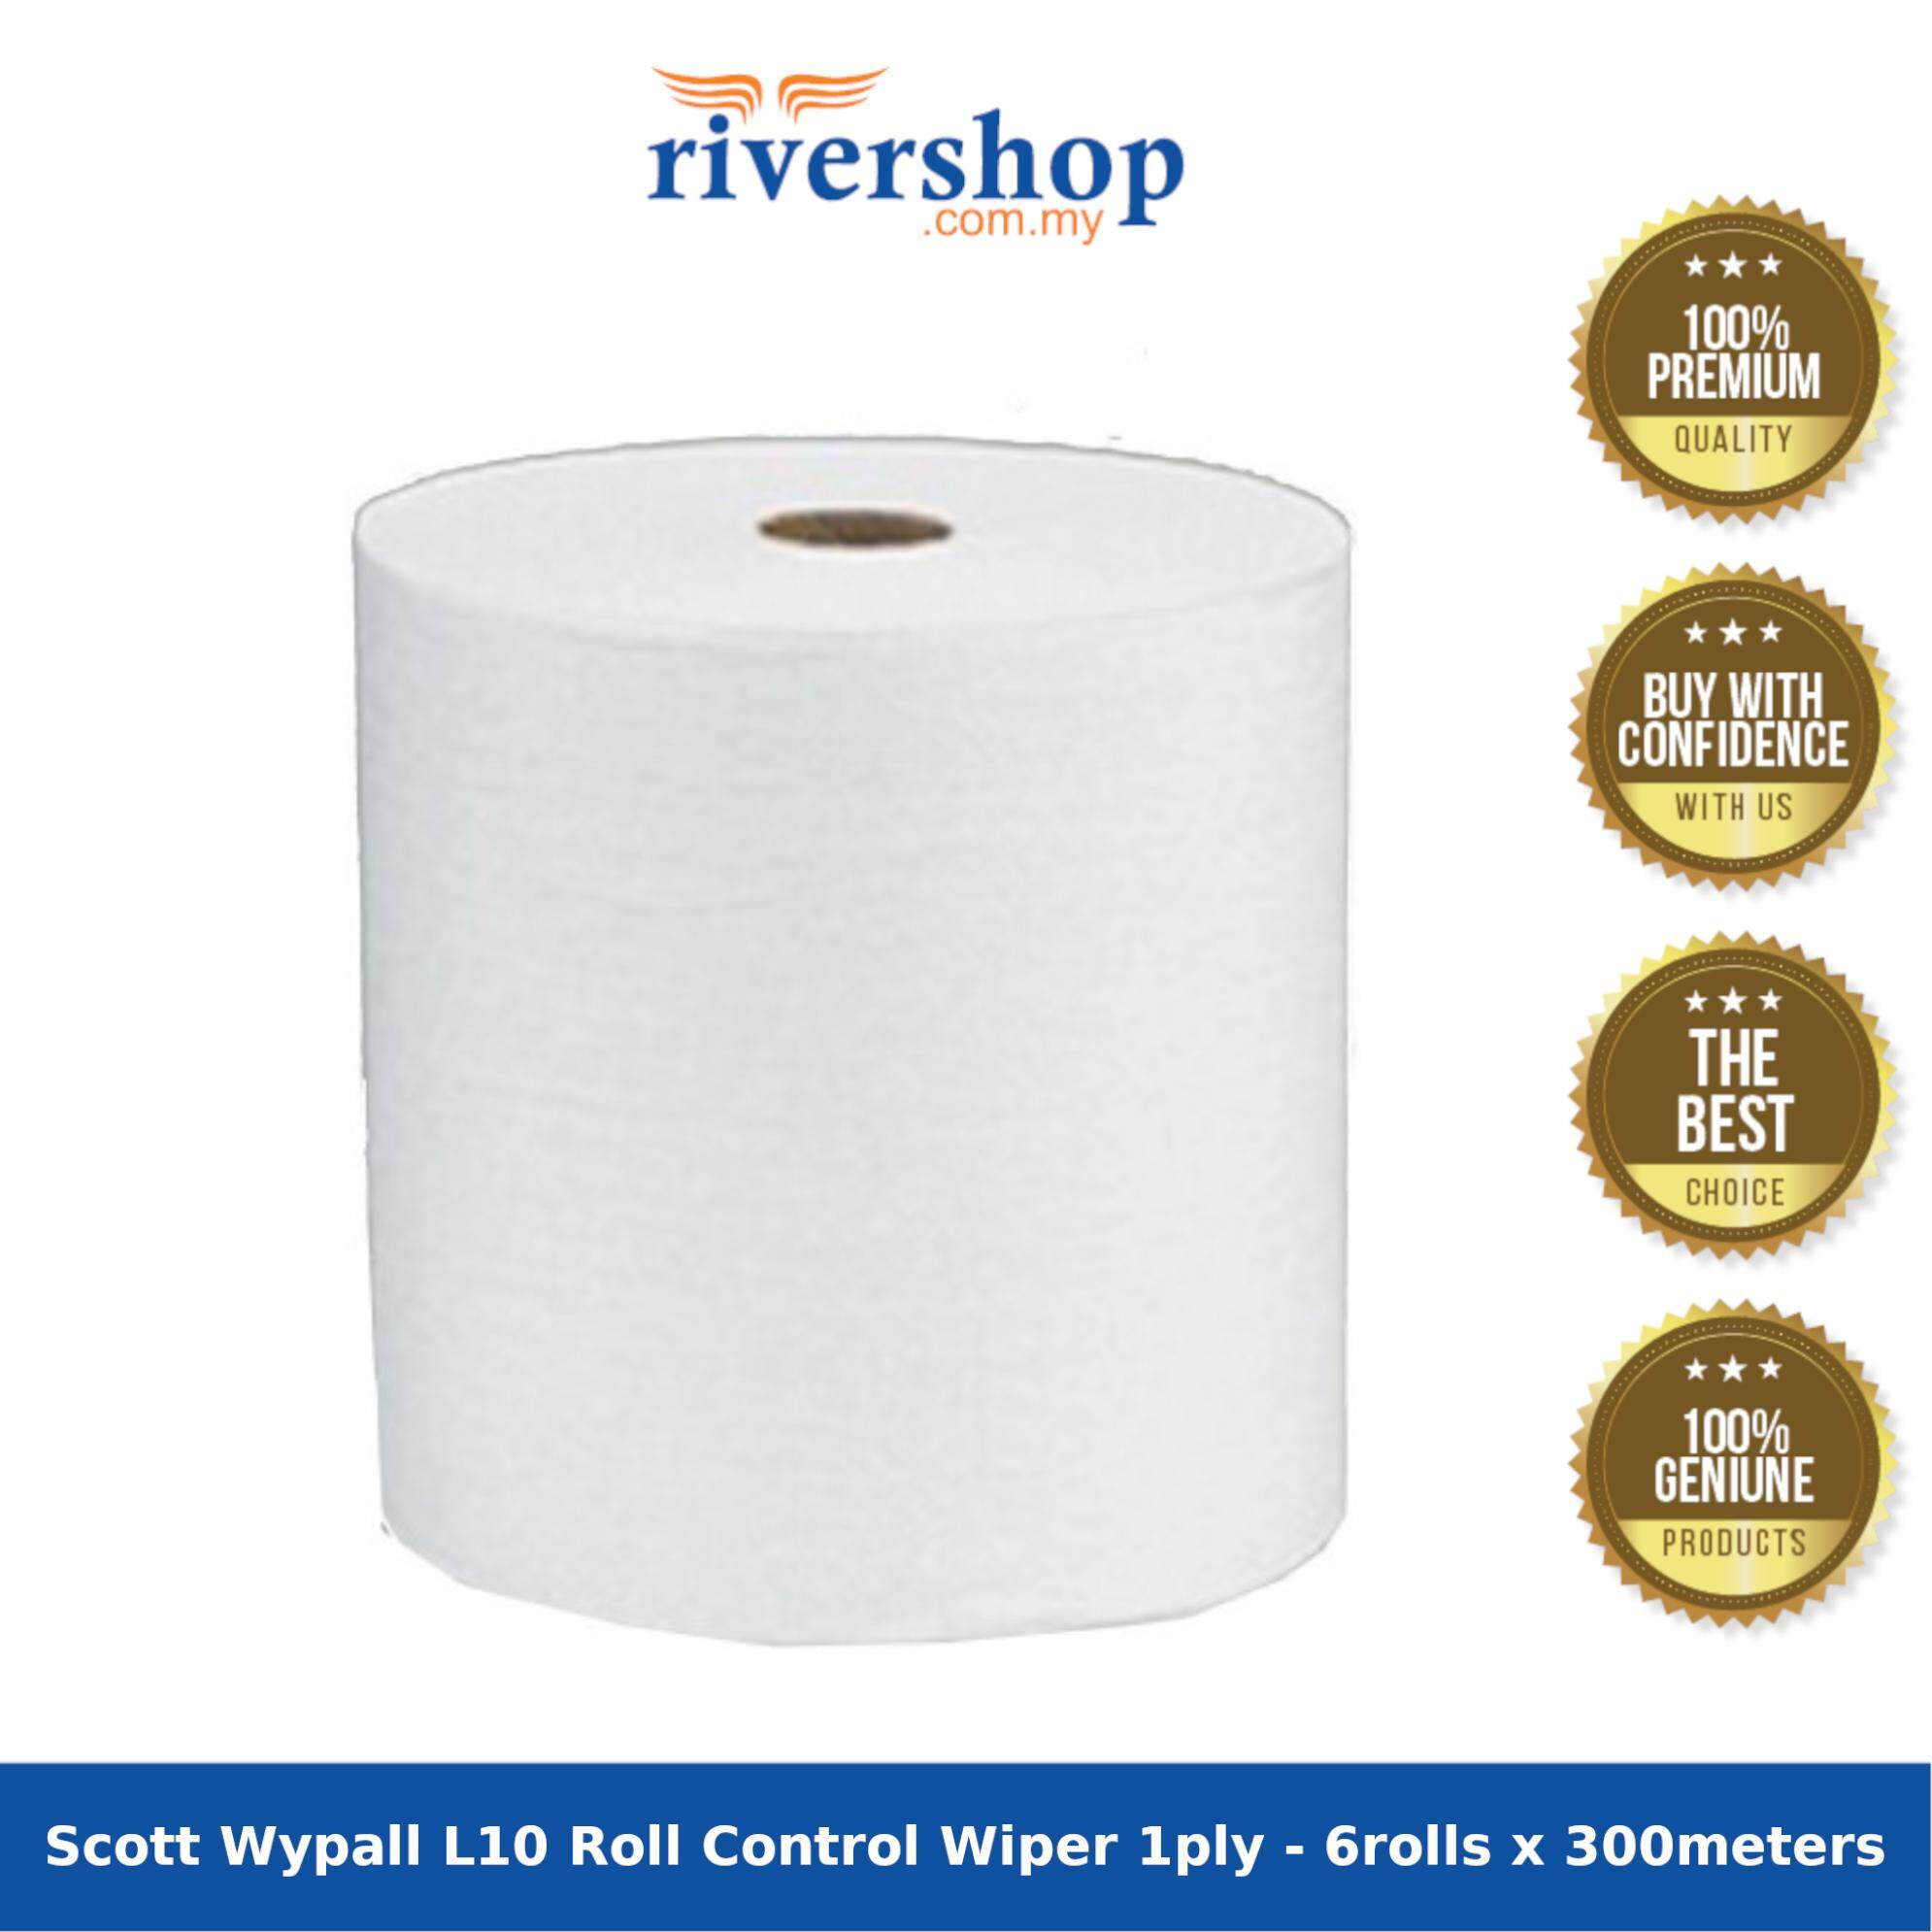 Scott Wypall L10 Roll Control Wiper 1ply - 6rolls x 300meters